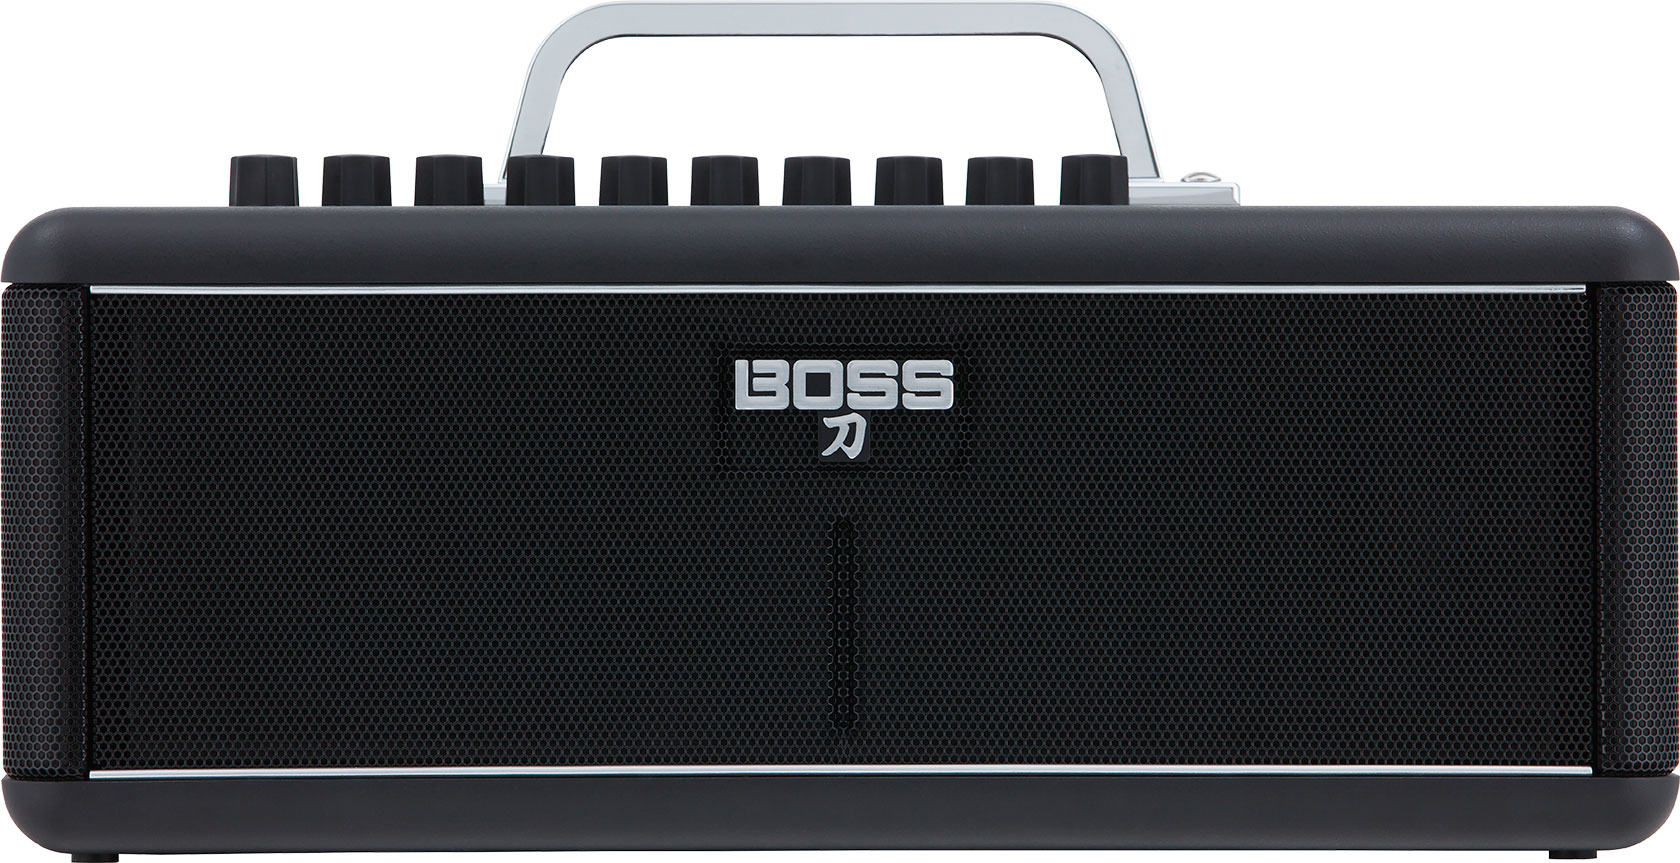 Boss Katana Air Guitar Amplifier Speakers Explained The Basics Series Parallel Wiring